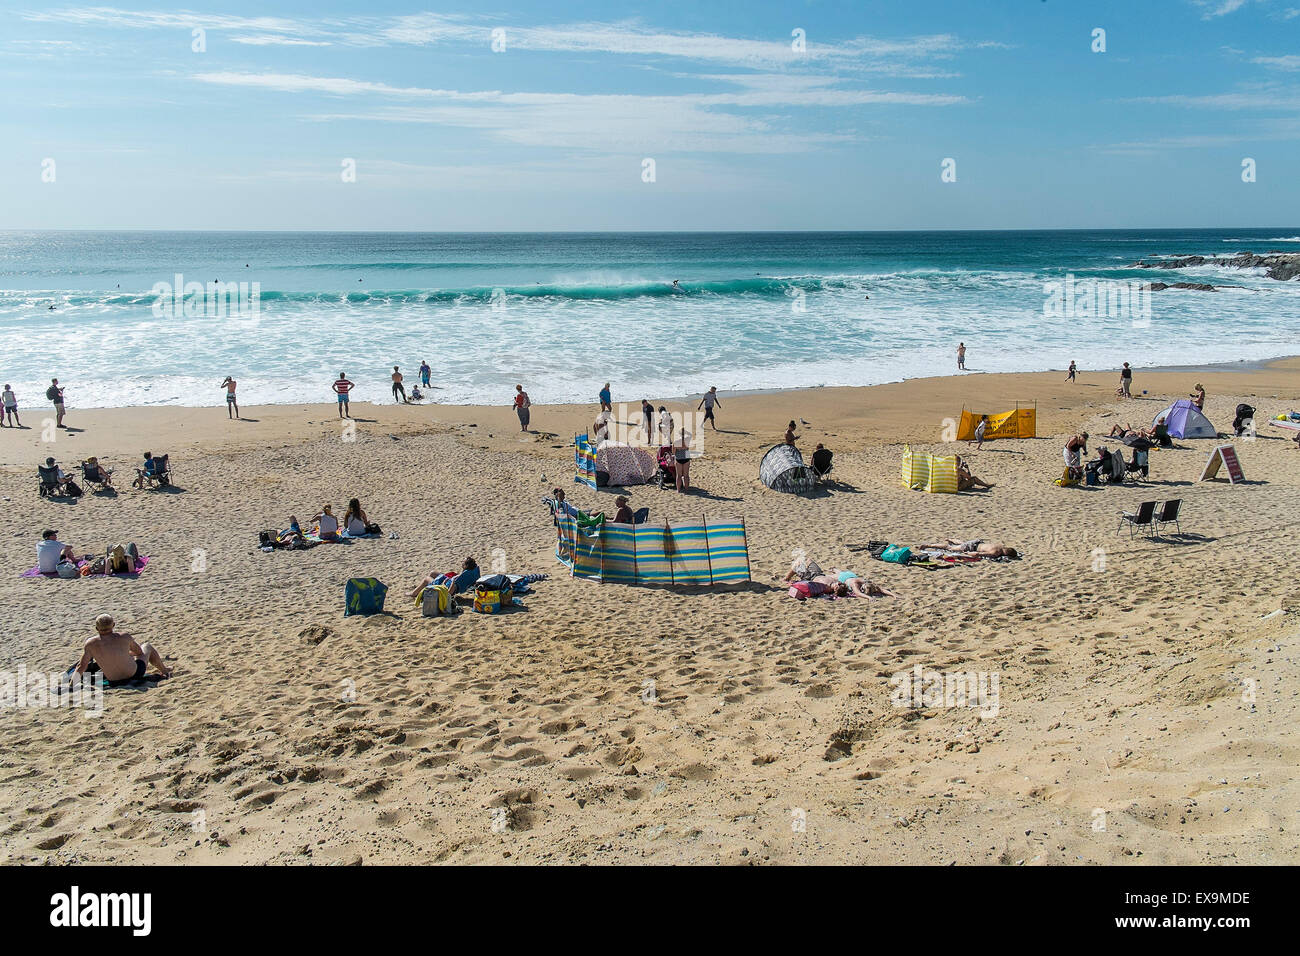 Holidaymakers on Fistral beach in Newquay, Cornwall. - Stock Image